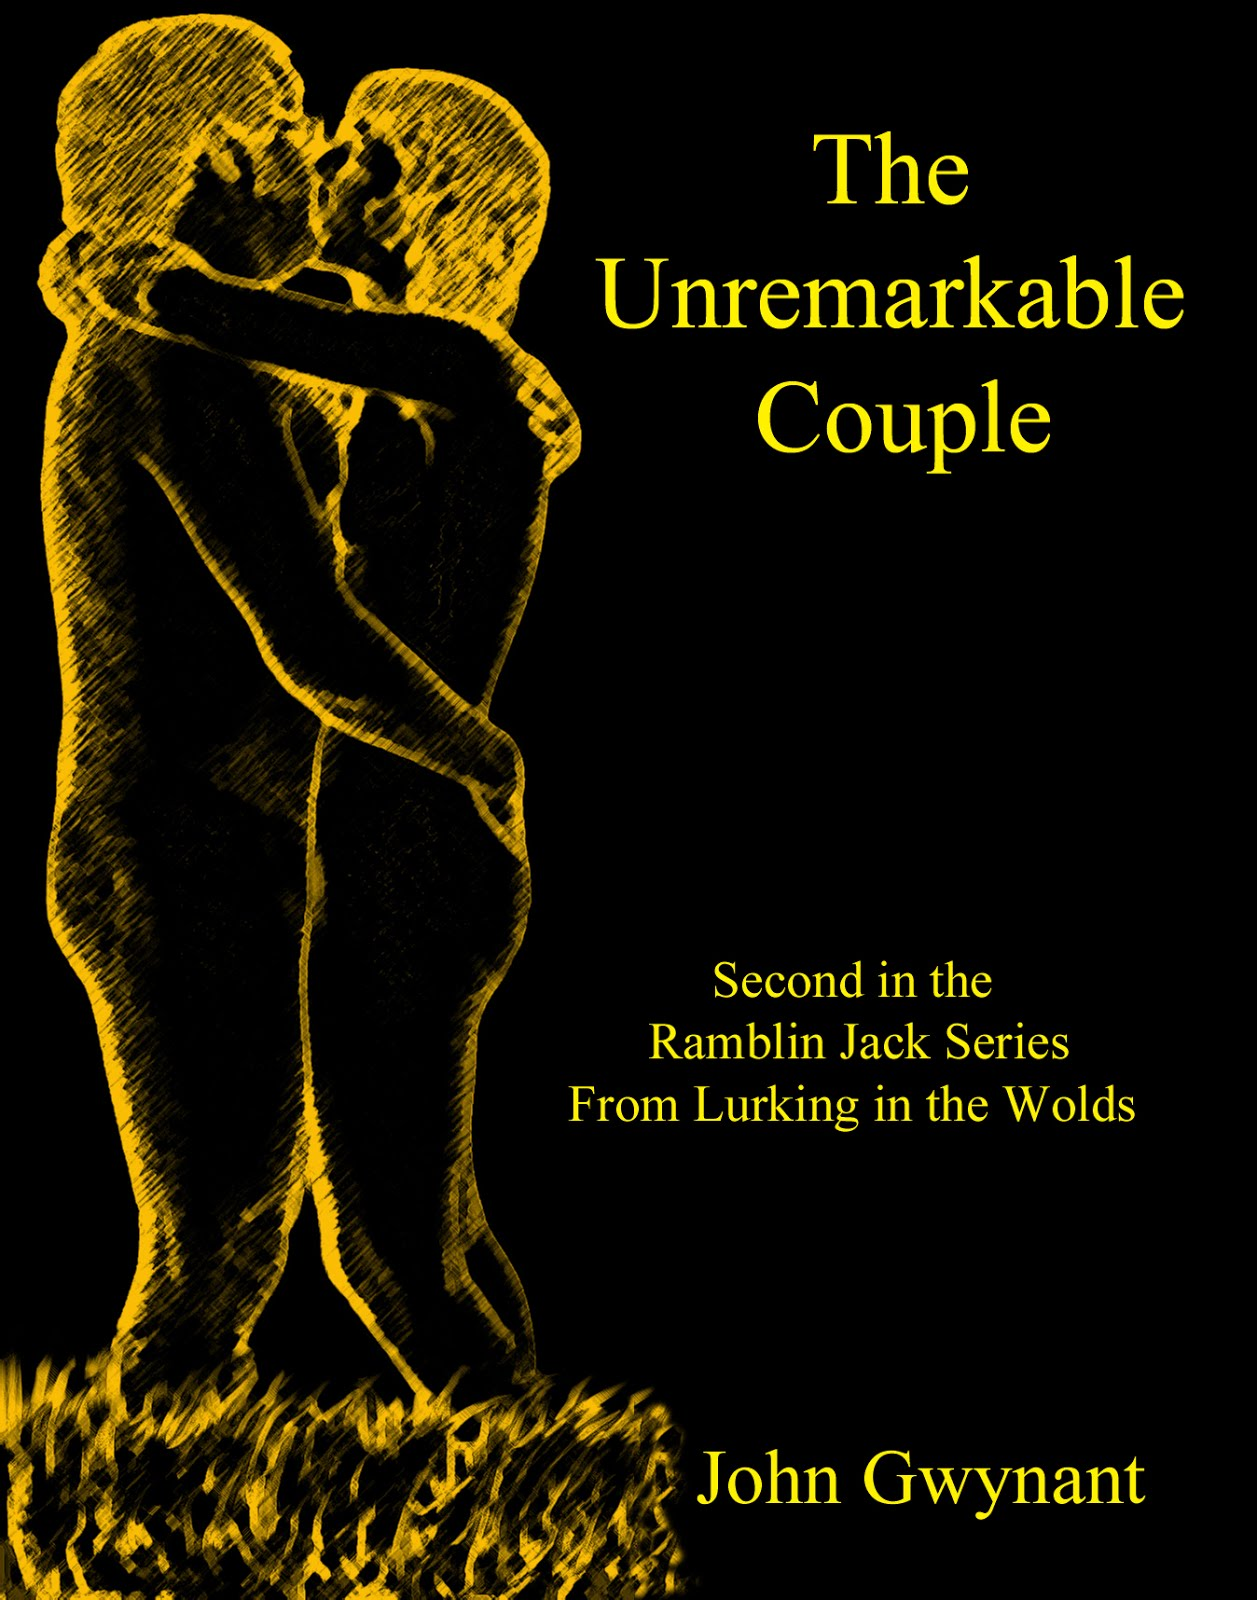 The Unremarkable Couple